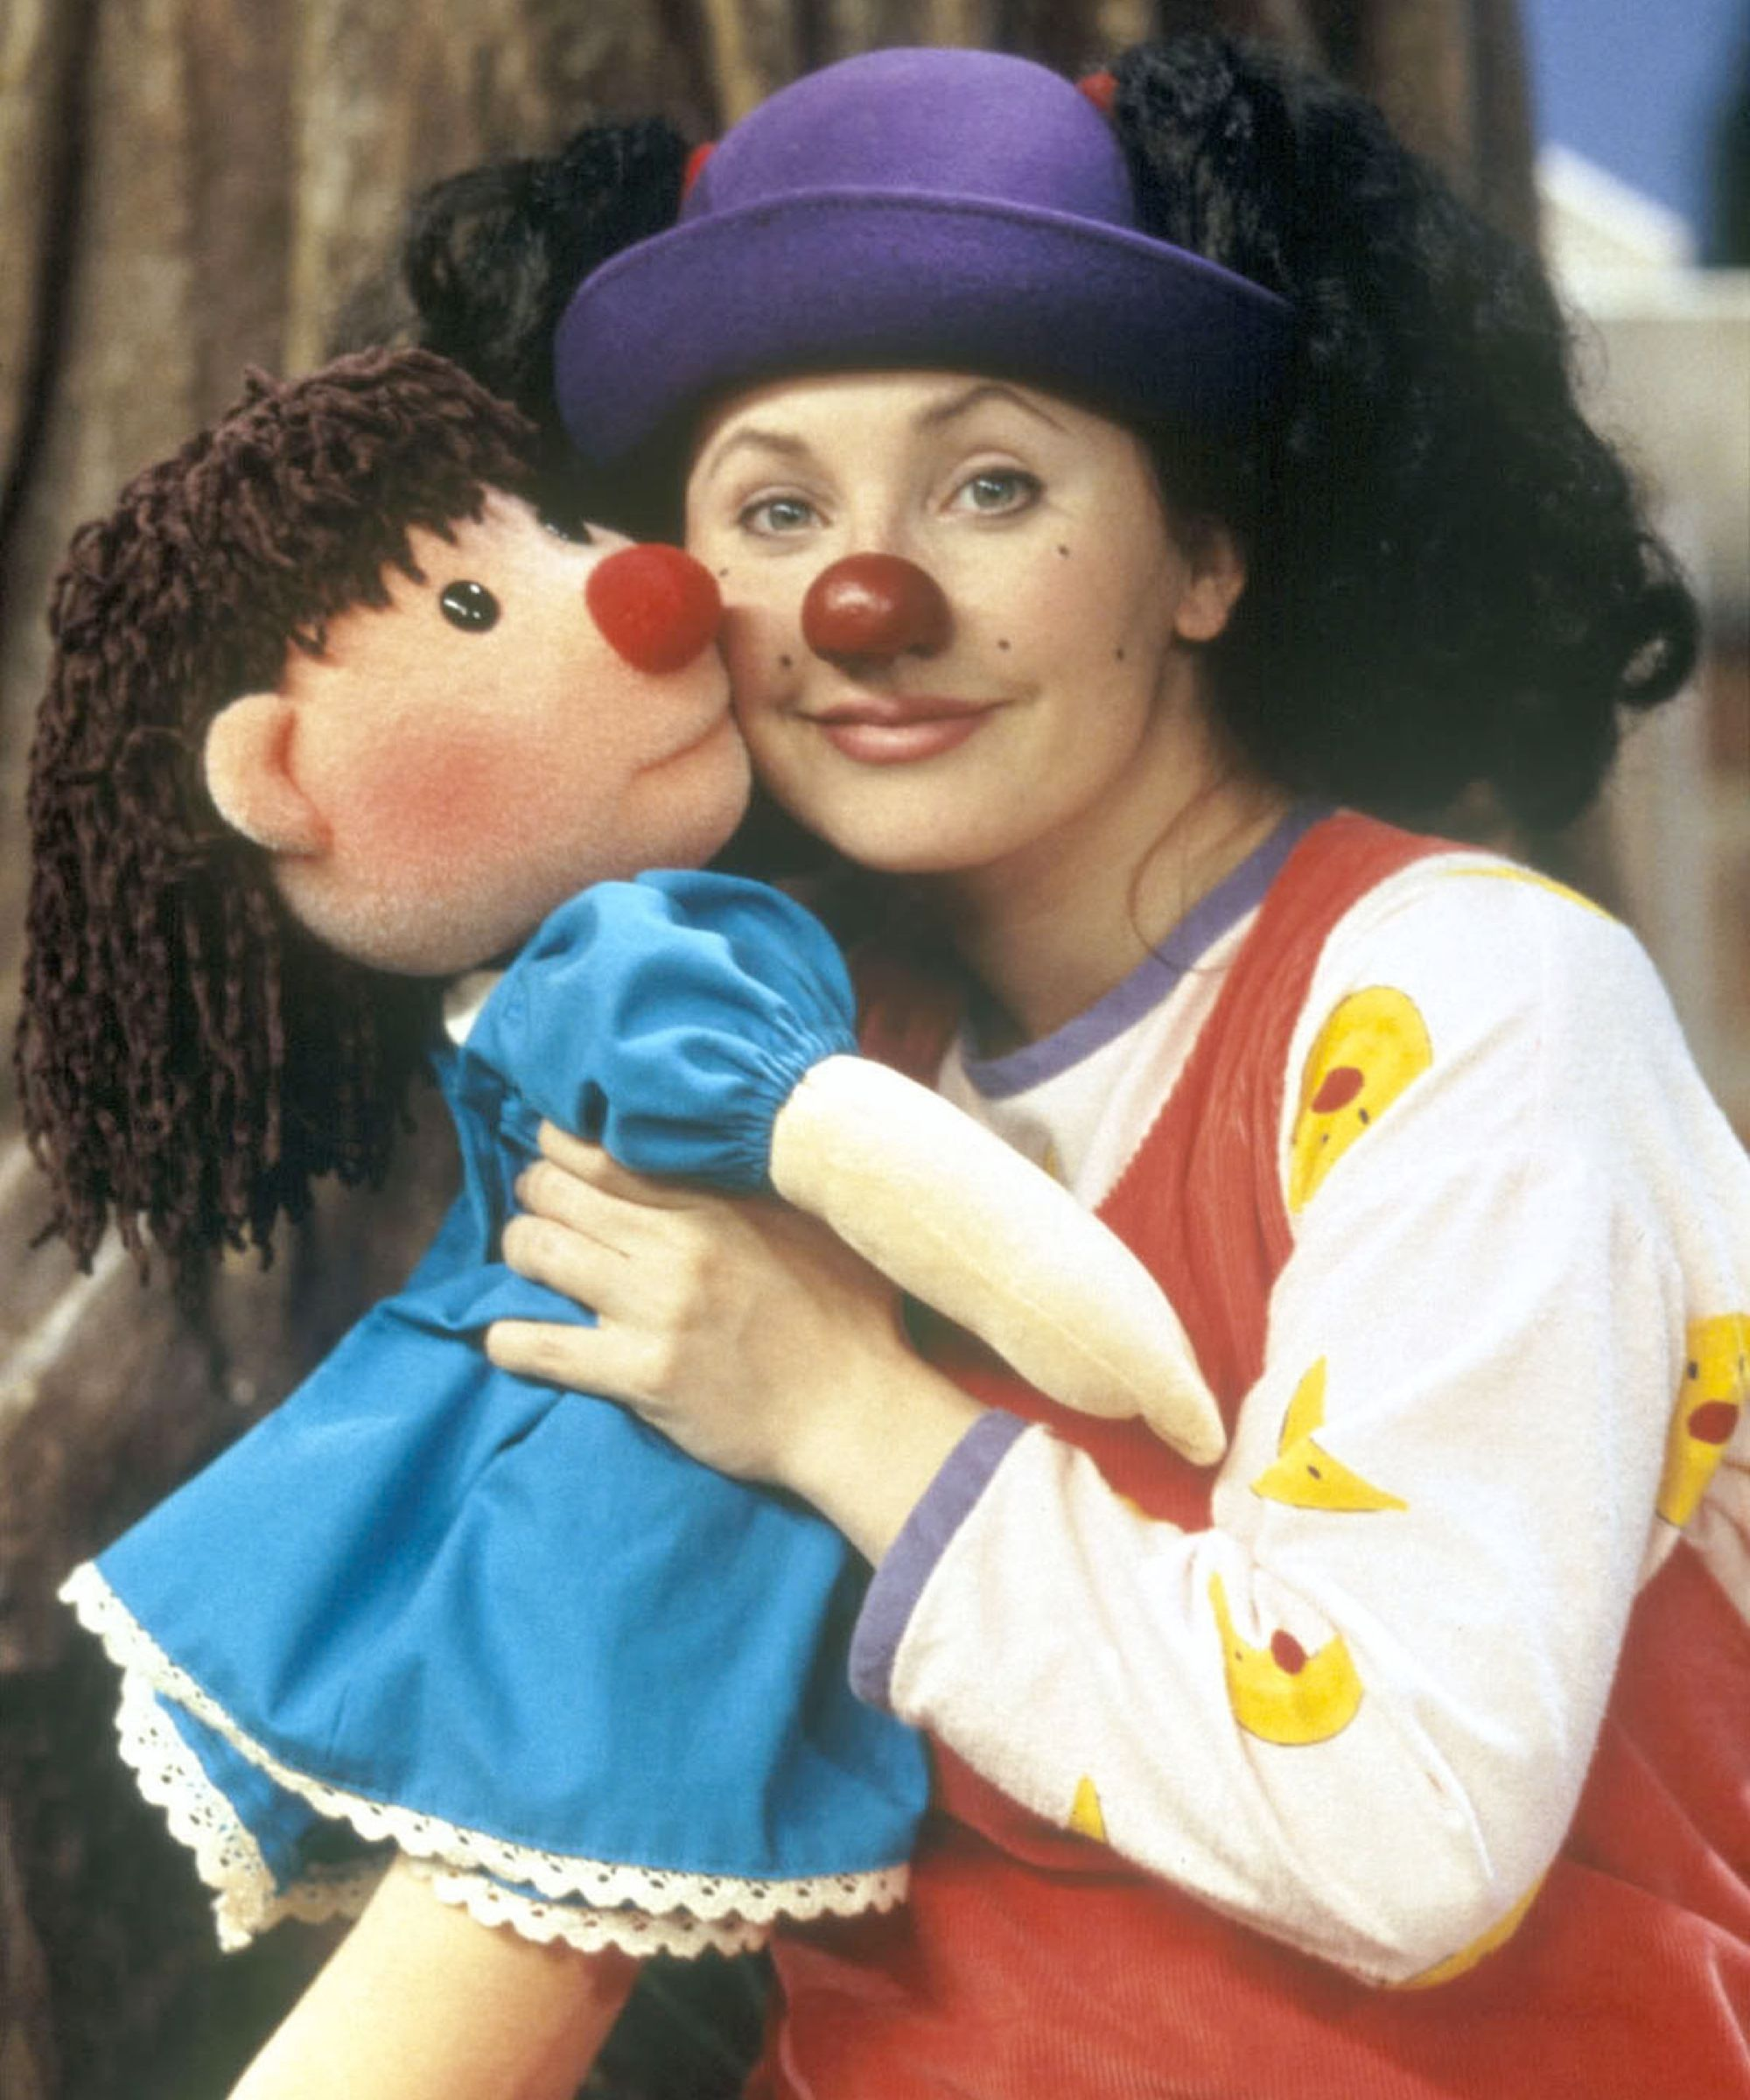 Big Couch Loonette From Quotthe Big Comfy Couch Quot Is All Grown Up